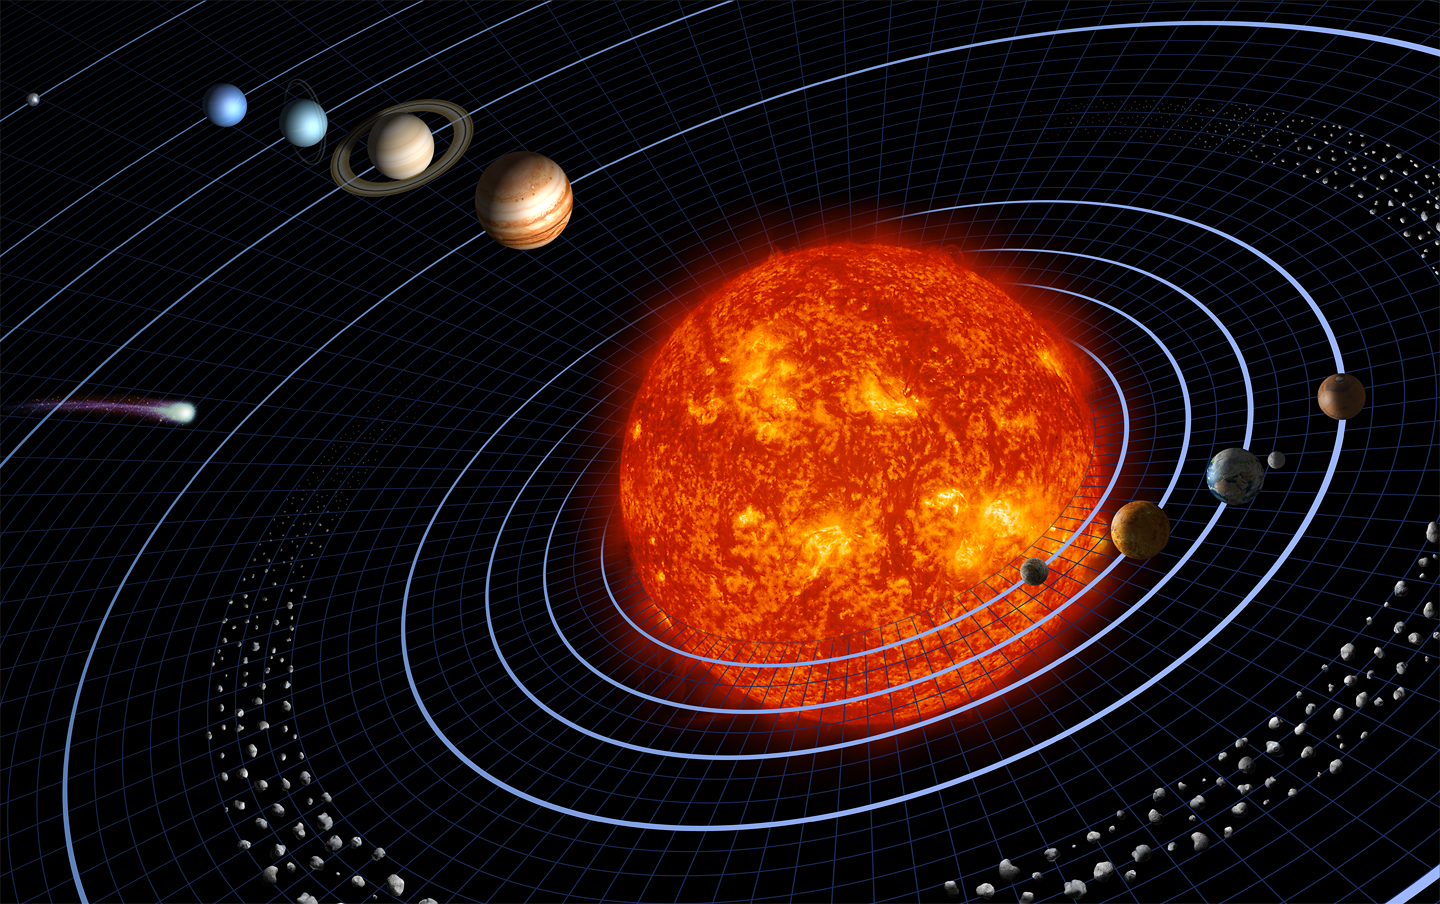 artist rendition of solar system bodies not to scale originally